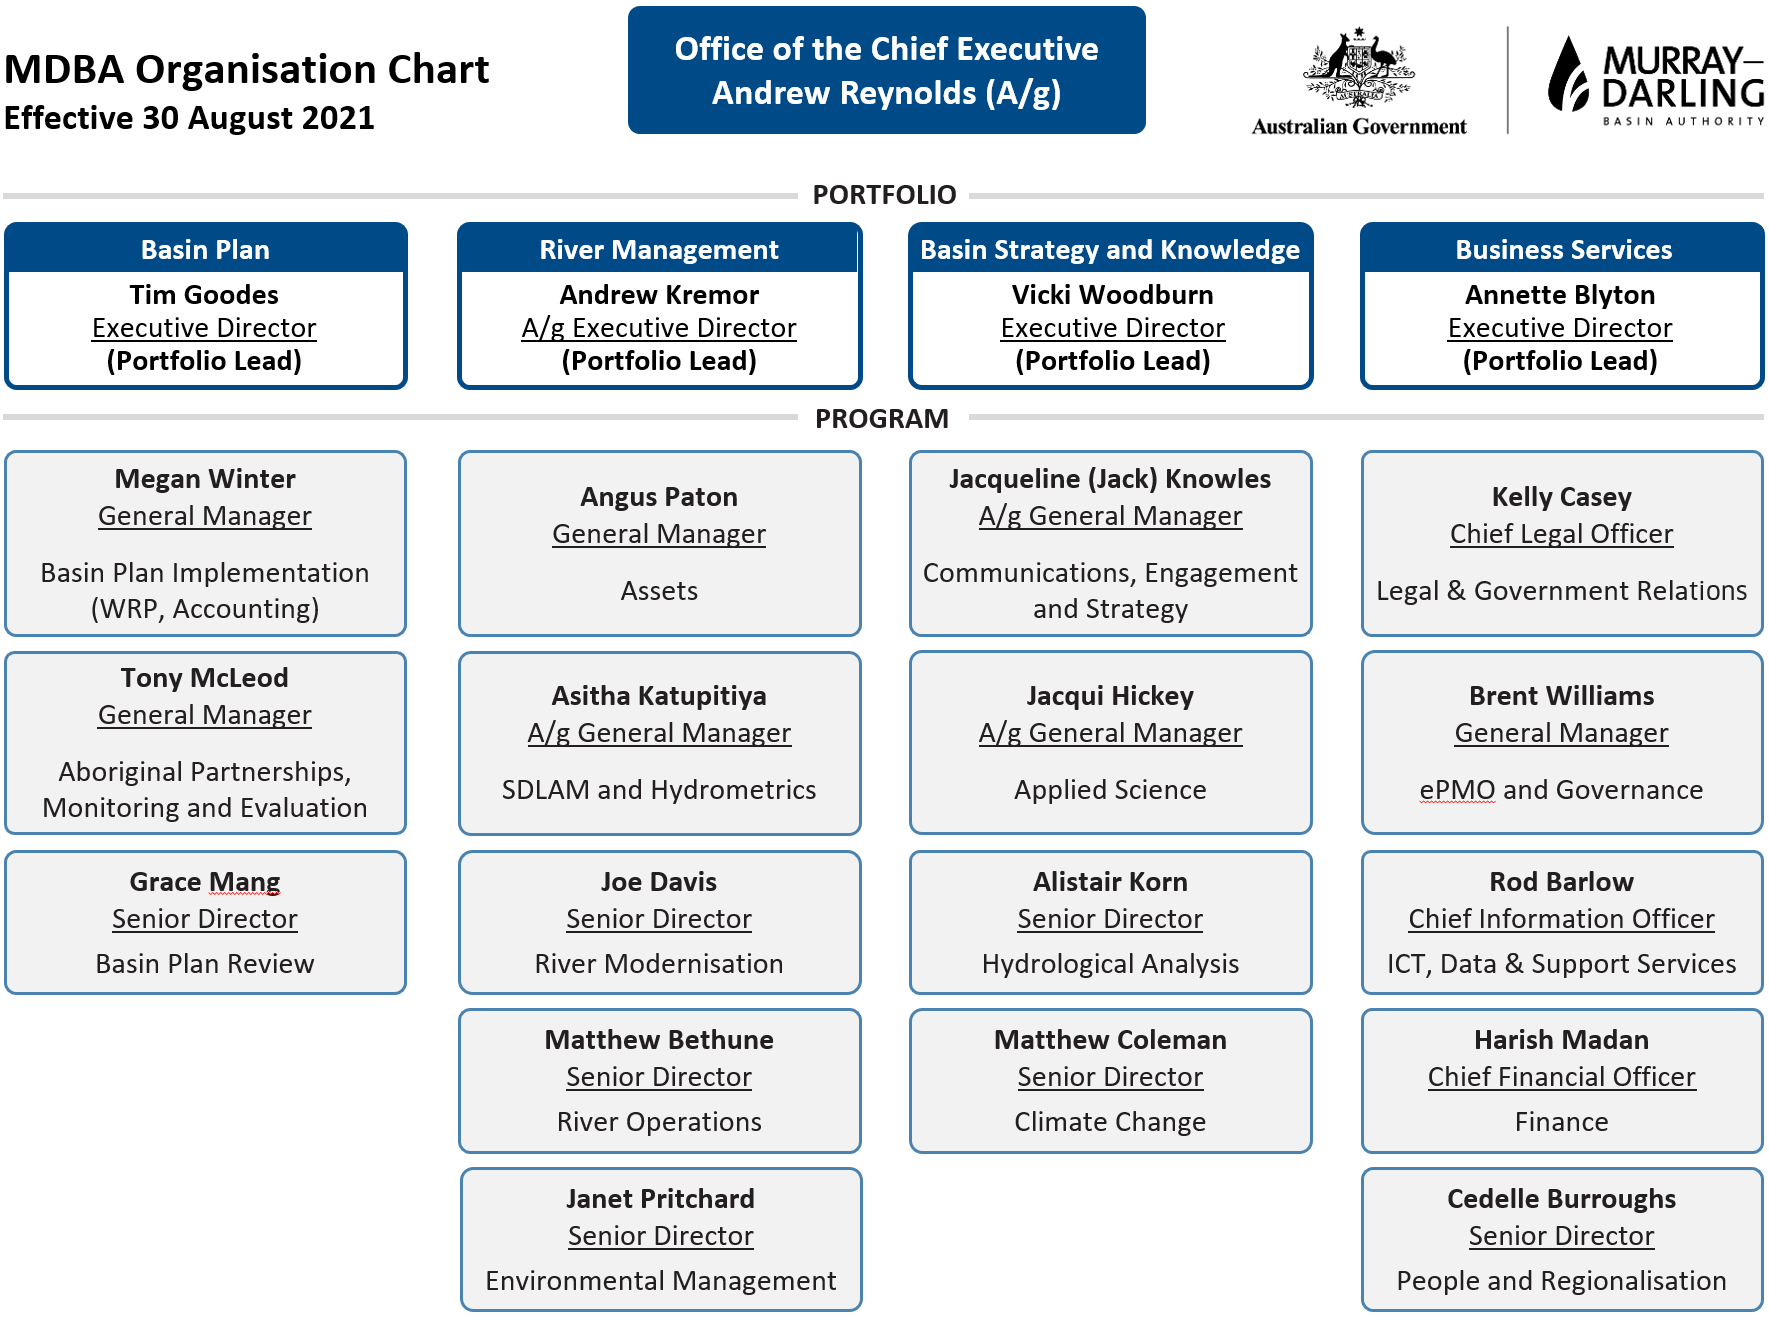 MDBA organisation chart as at 30 August 2021. Full description provided in web page below